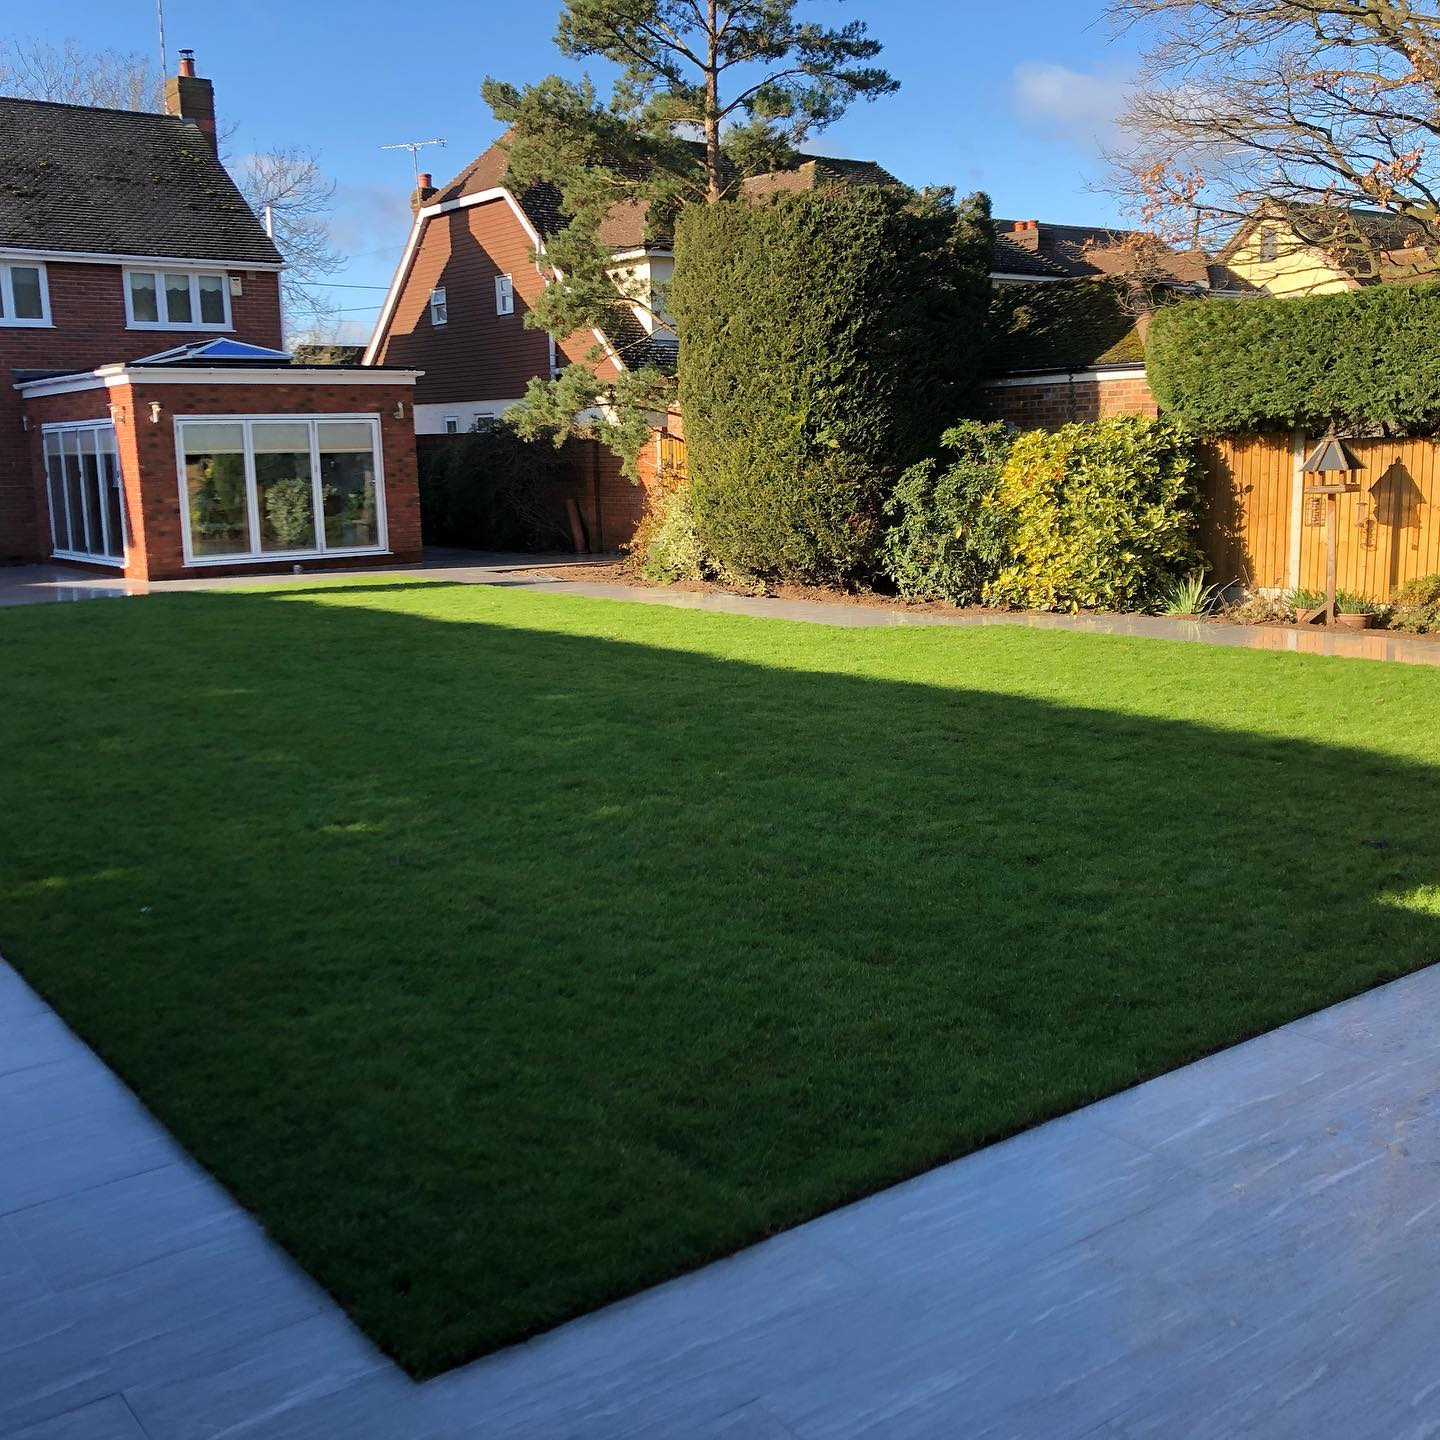 Infinity Home & Paving Ltd